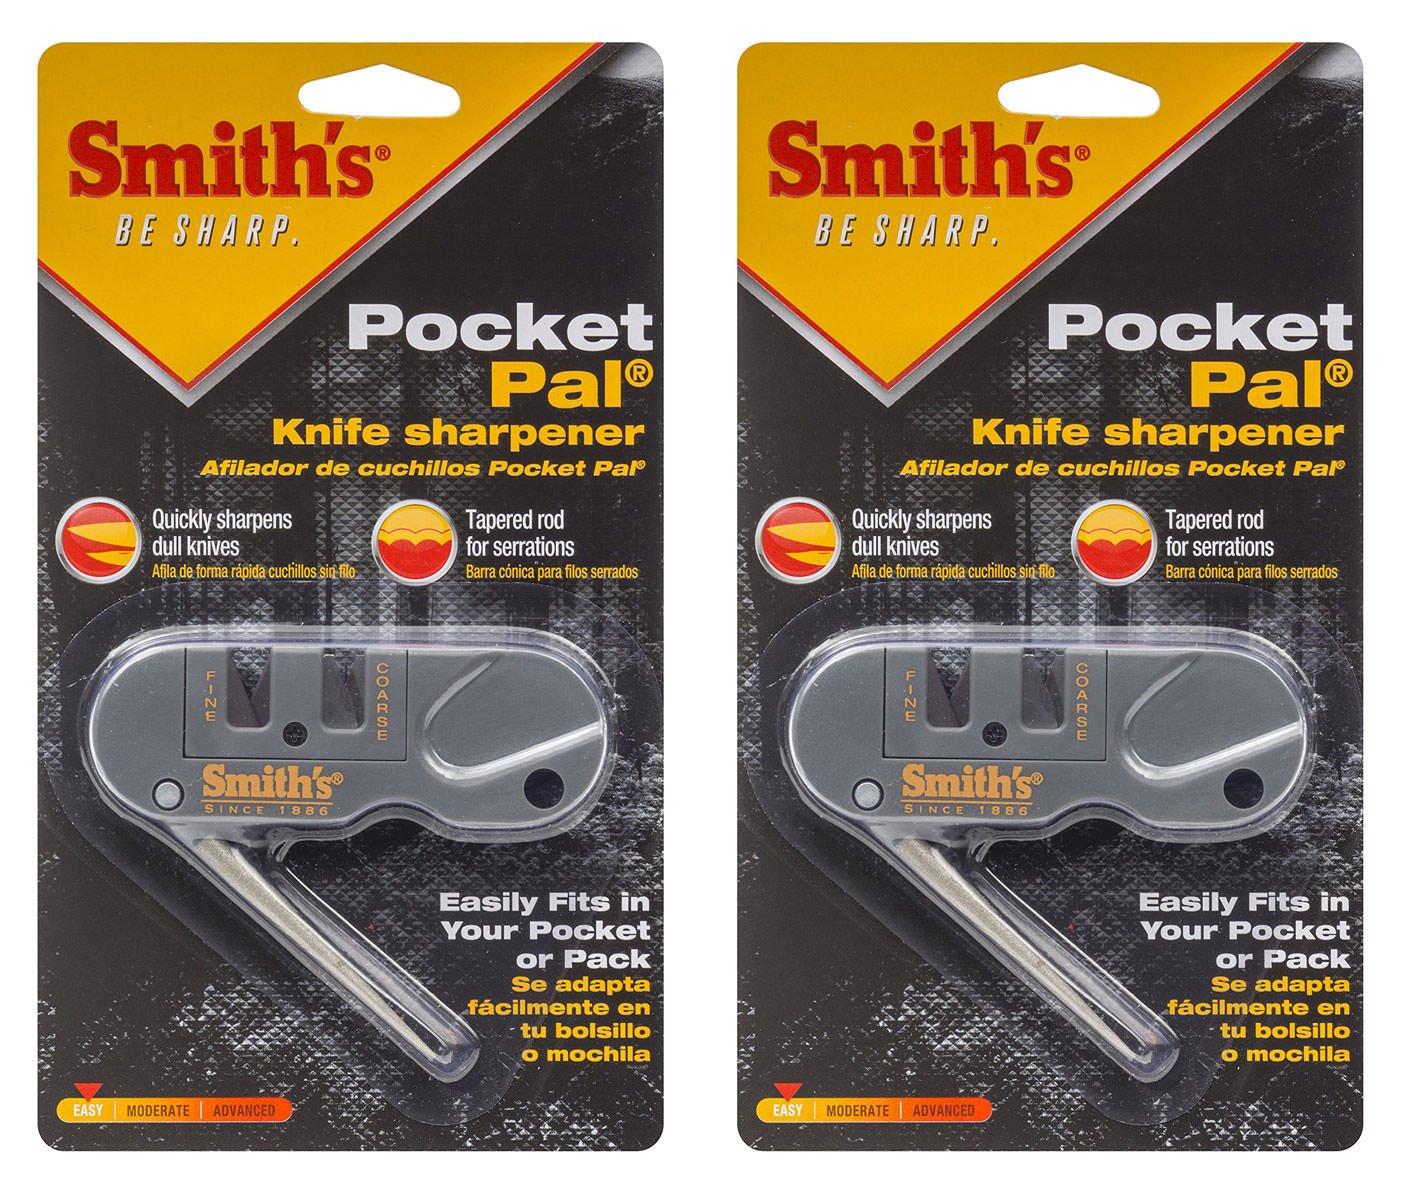 Smiths PP1 Pocket Pal Multifunction Sharpener, Grey, 2 Pack